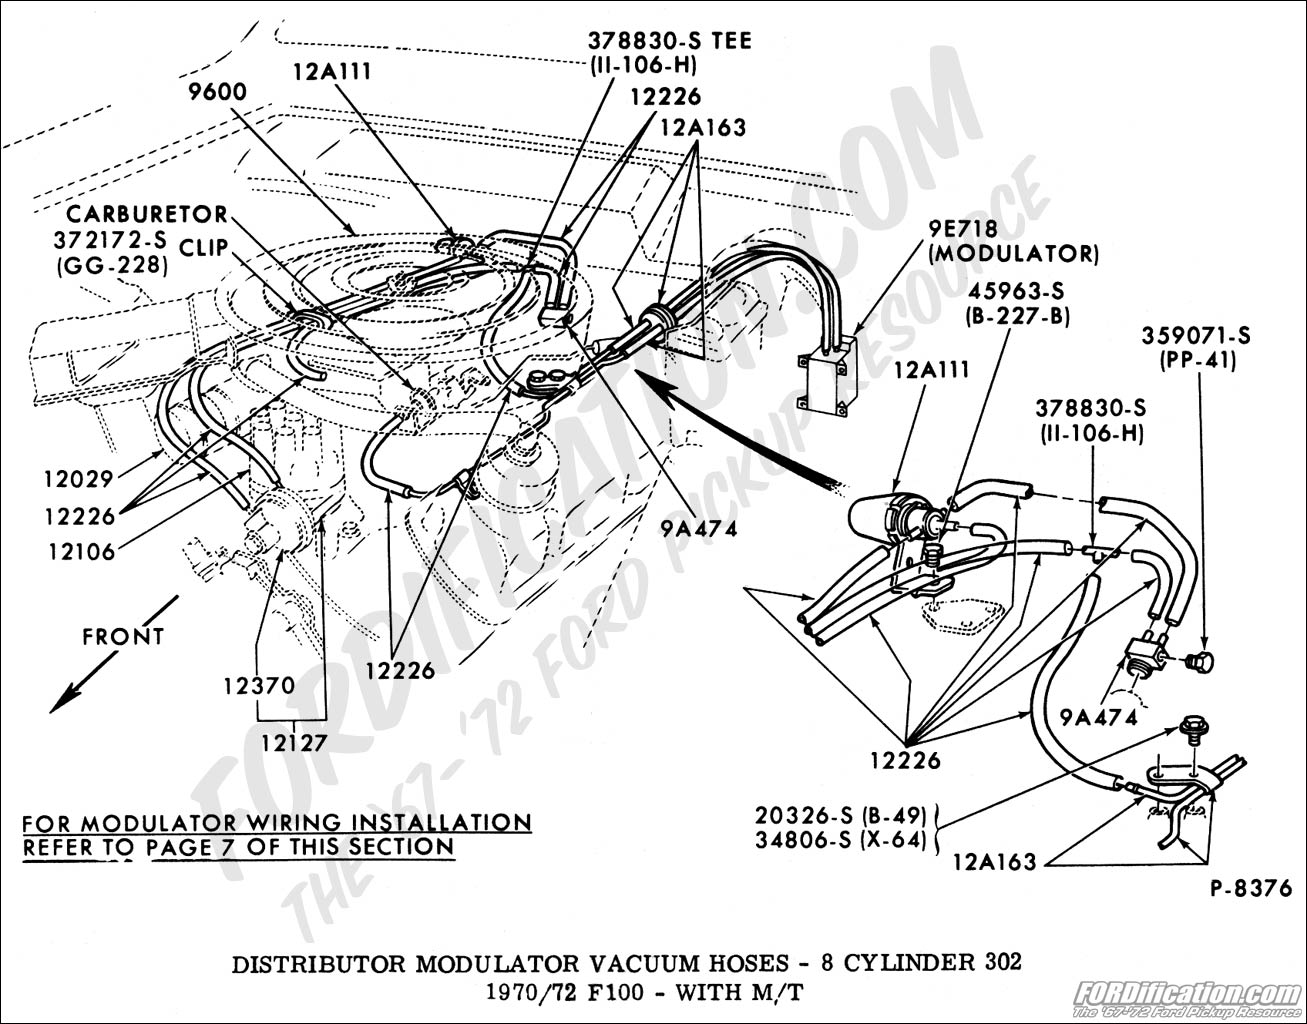 1992 ford f 350 fuel pump wiring diagram with Viewtopic on 966863 1991 Ford F350 Wiring Schematic together with Engine as well Viewtopic in addition P 0900c152801db3f7 together with 94 Gmc Fuel Pump Wiring Diagram.